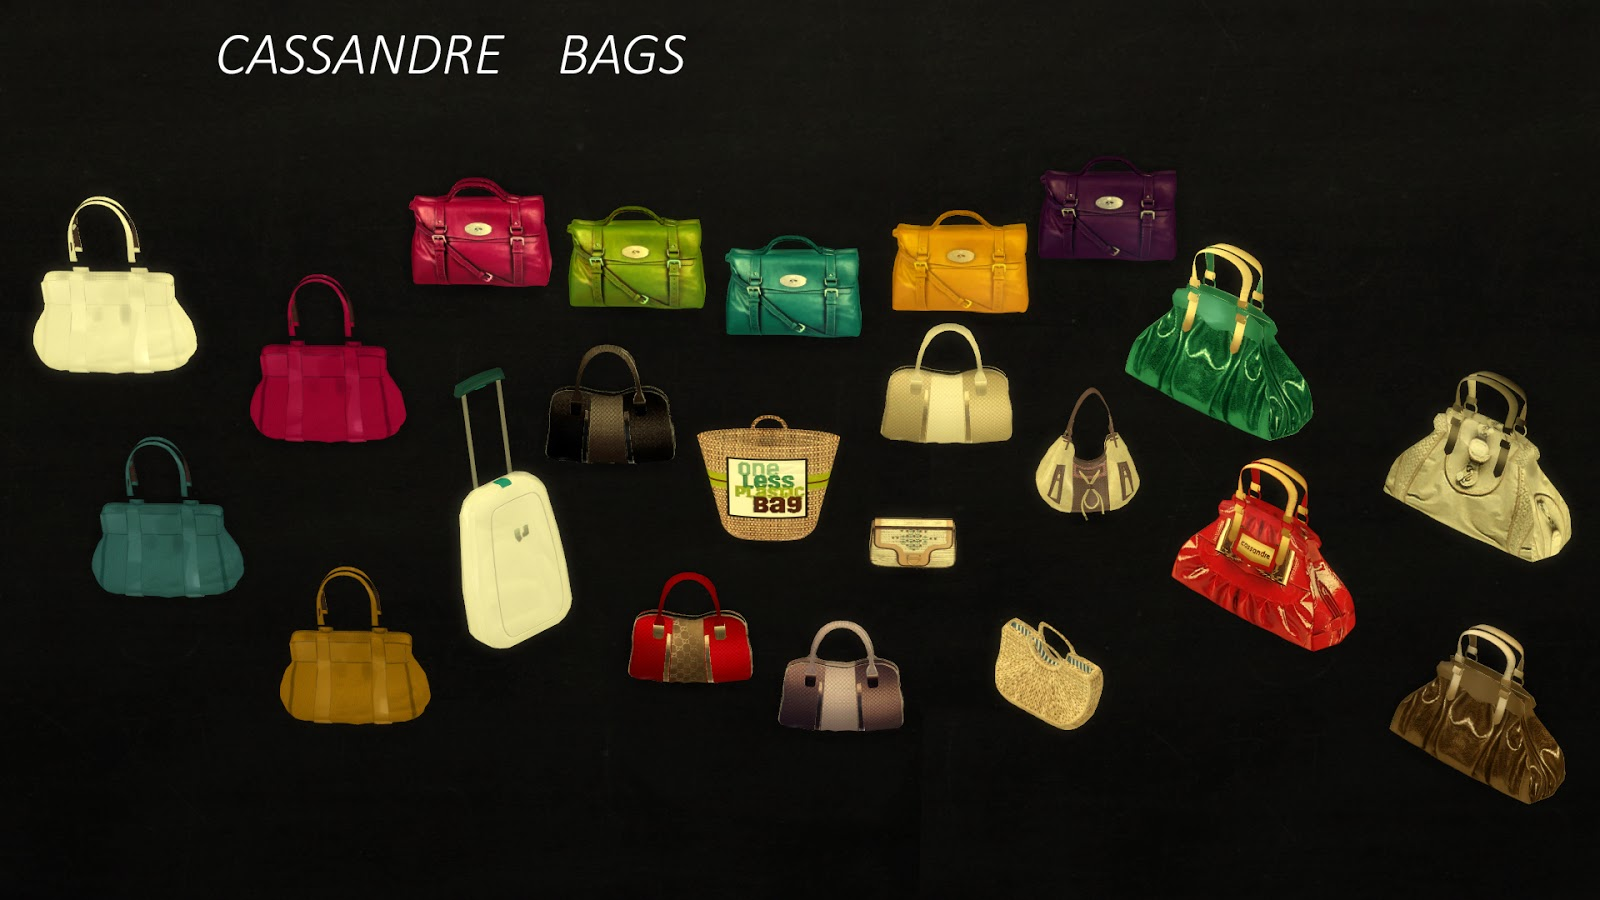 sims 4 cc's - the best: decorative handbags by leo sims, Badezimmer ideen